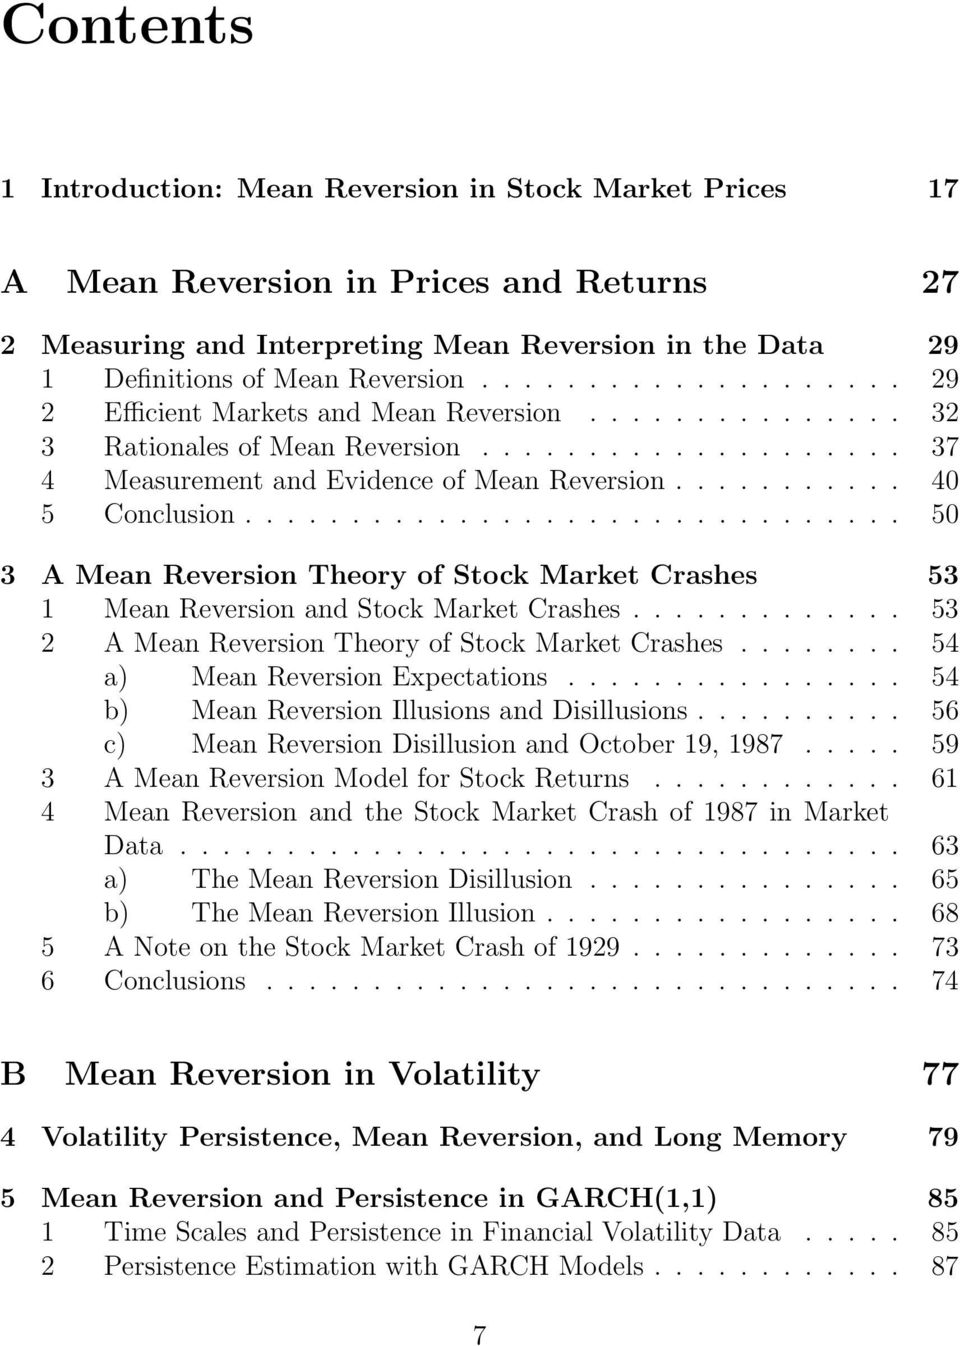 MeanReversionandStockMarketCrashes 53 2 A Mean Reversion Theory of Stock Market Crashes 54 a) MeanReversionExpectations 54 b) Mean Reversion Illusions and Disillusions 56 c) Mean Reversion